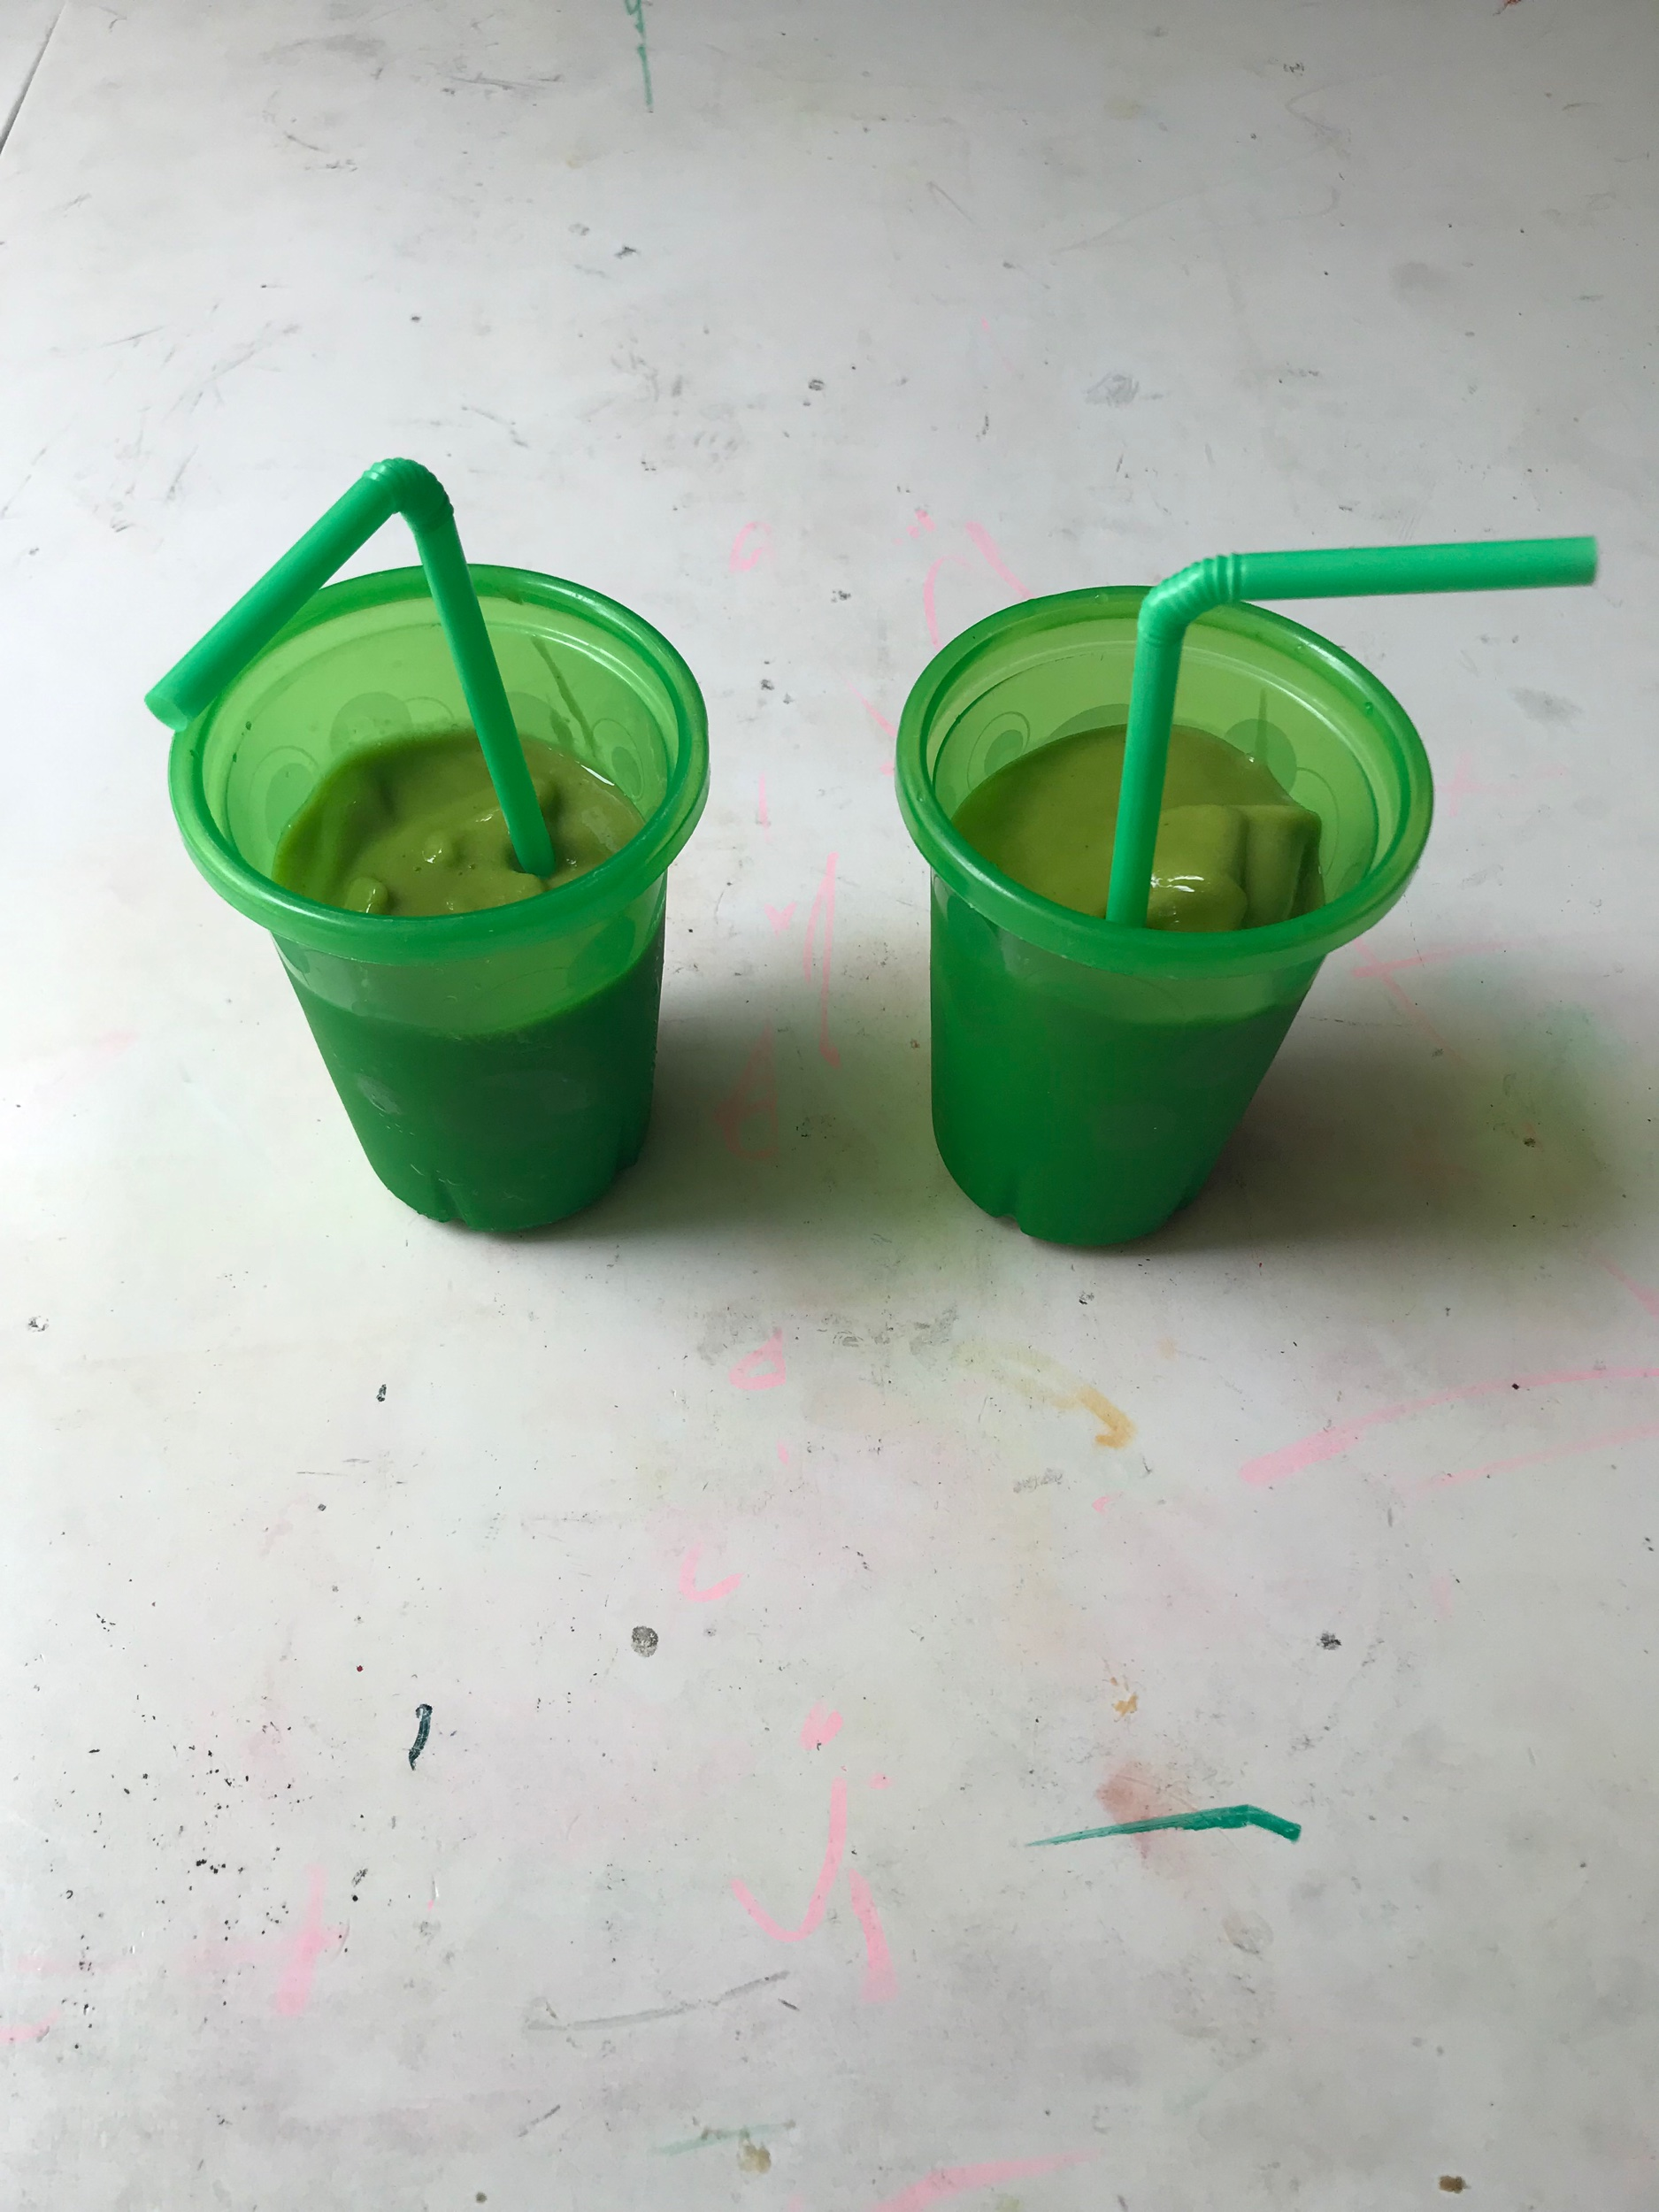 Life hack: when the house gets too loud and everyone needs to chill and watch a show… shove green smoothies in their faces. They will be distracted and drink it all- and you just made your kids eat a handful of spinach. Win.